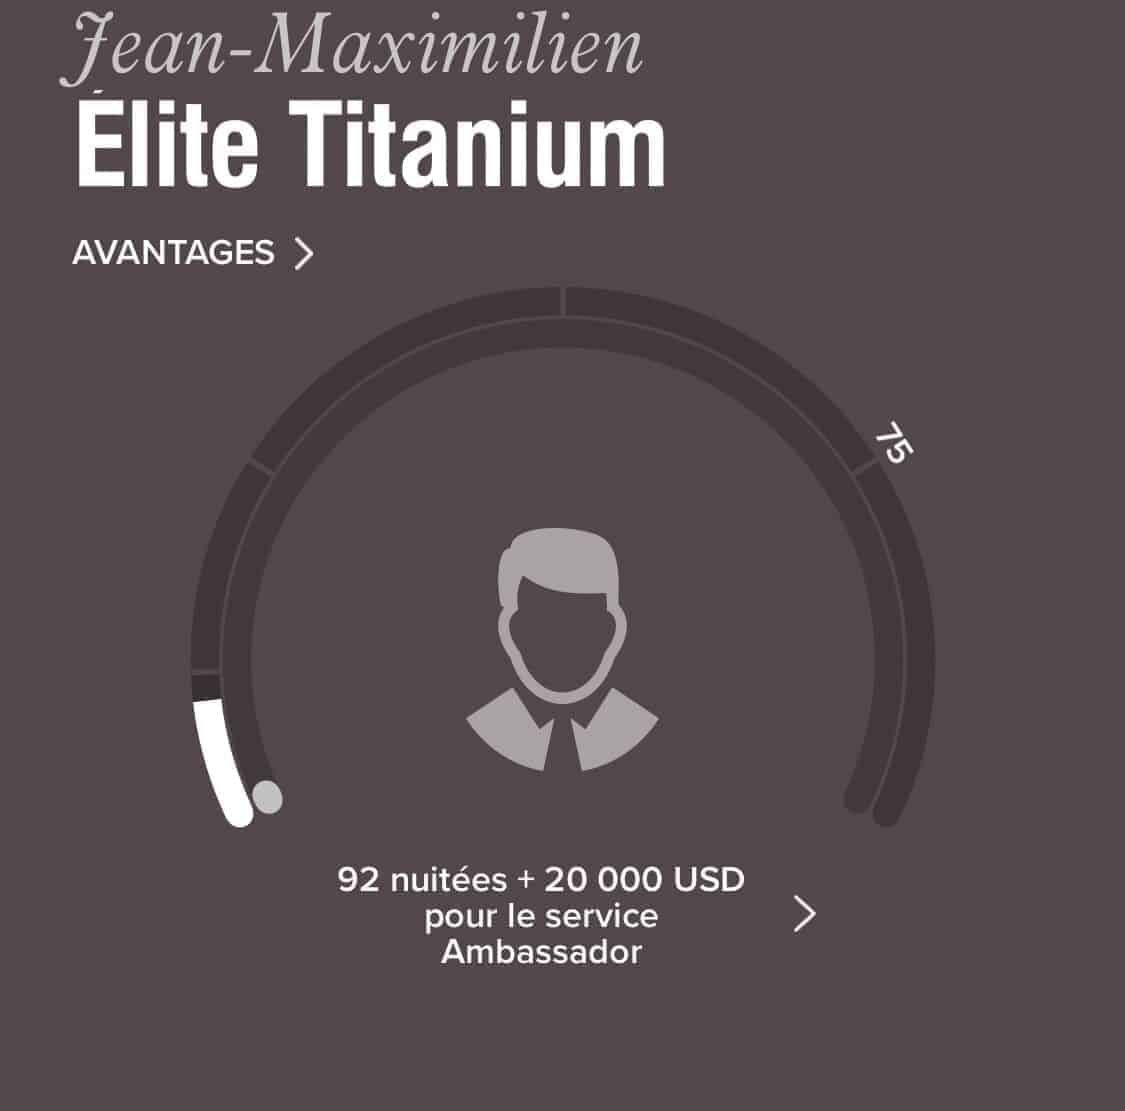 statut elite titanium marriott